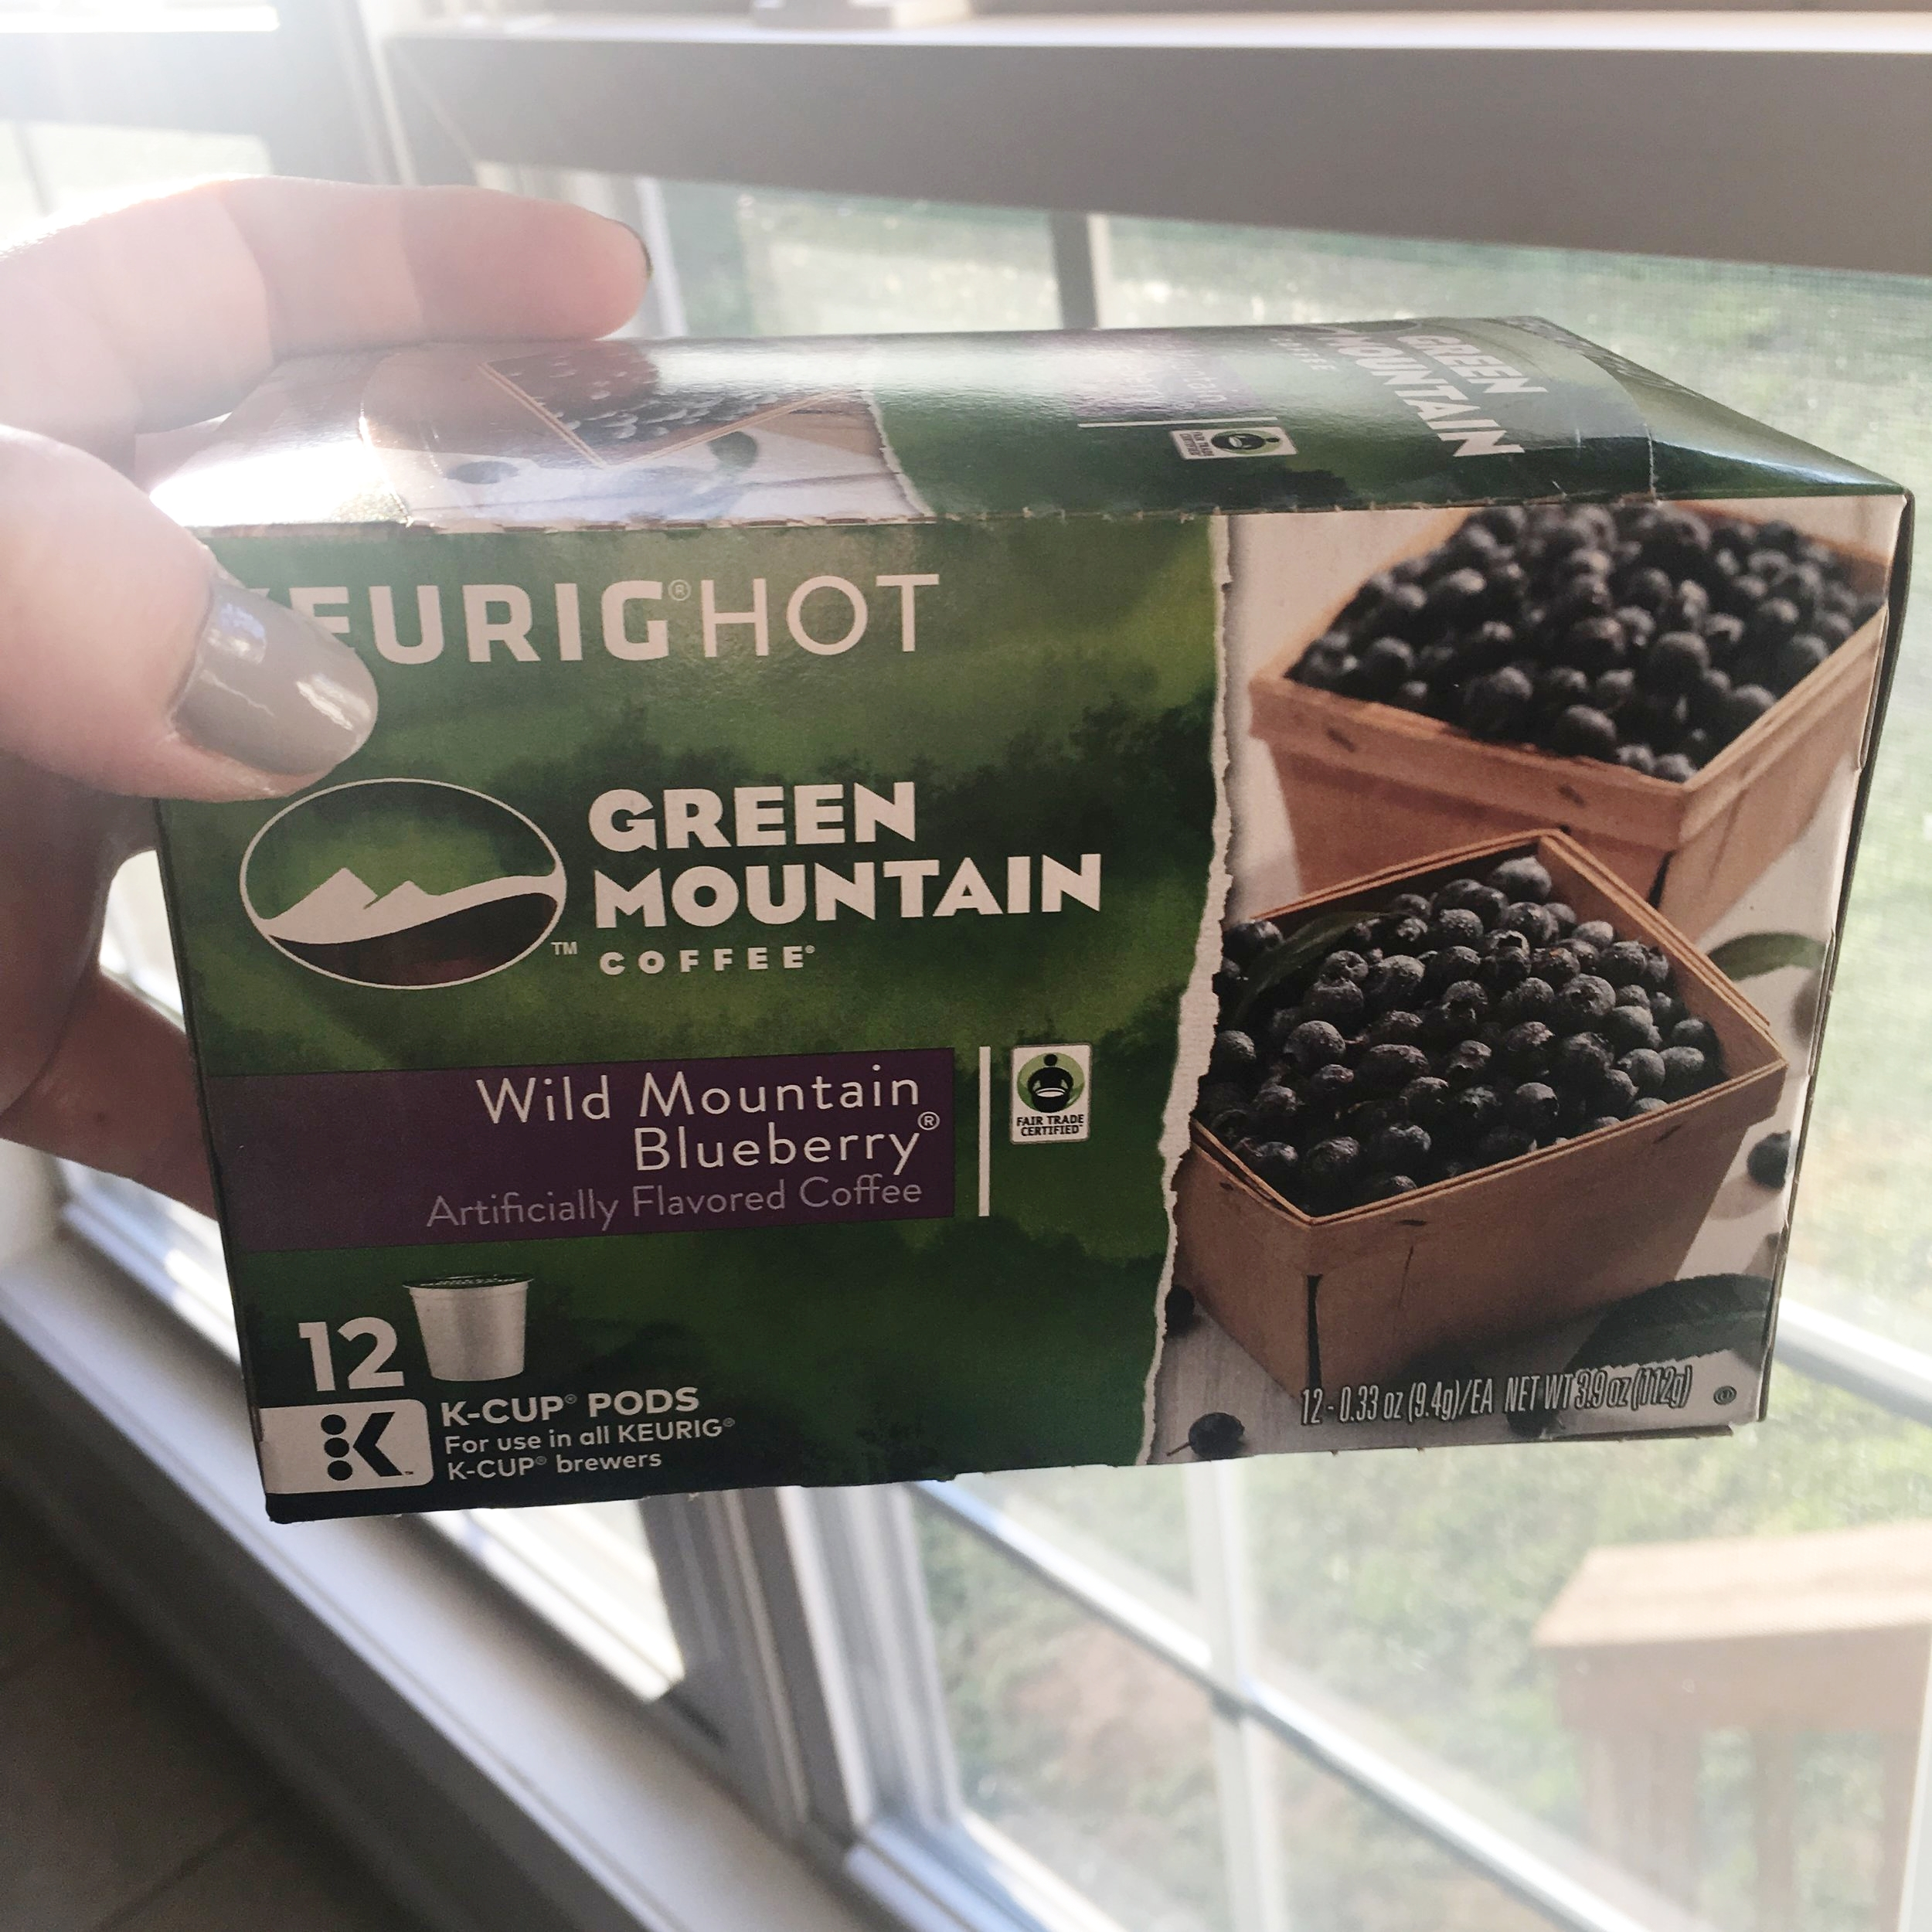 I'd like to have some of those blueberries about now.